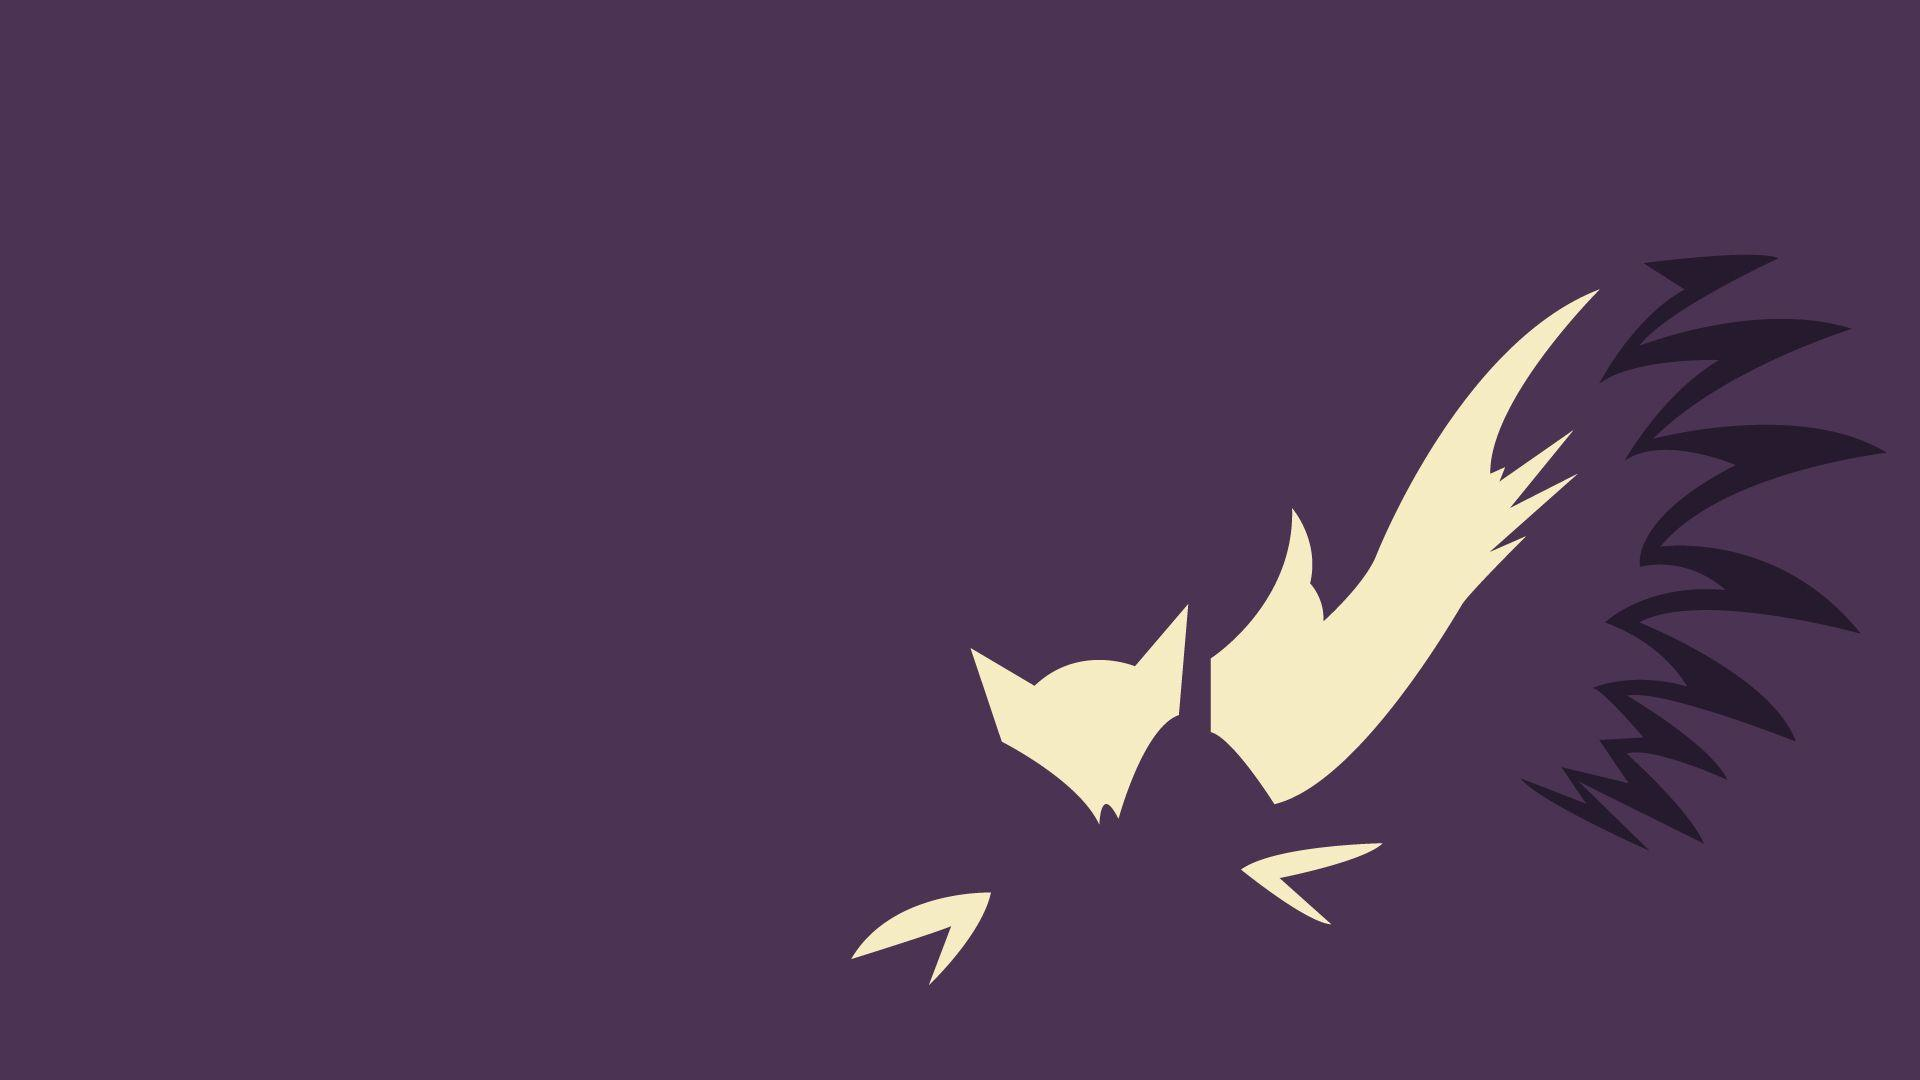 Free 1920x1080 Stunky Minimalism Purple Background Wallpapers Full ...